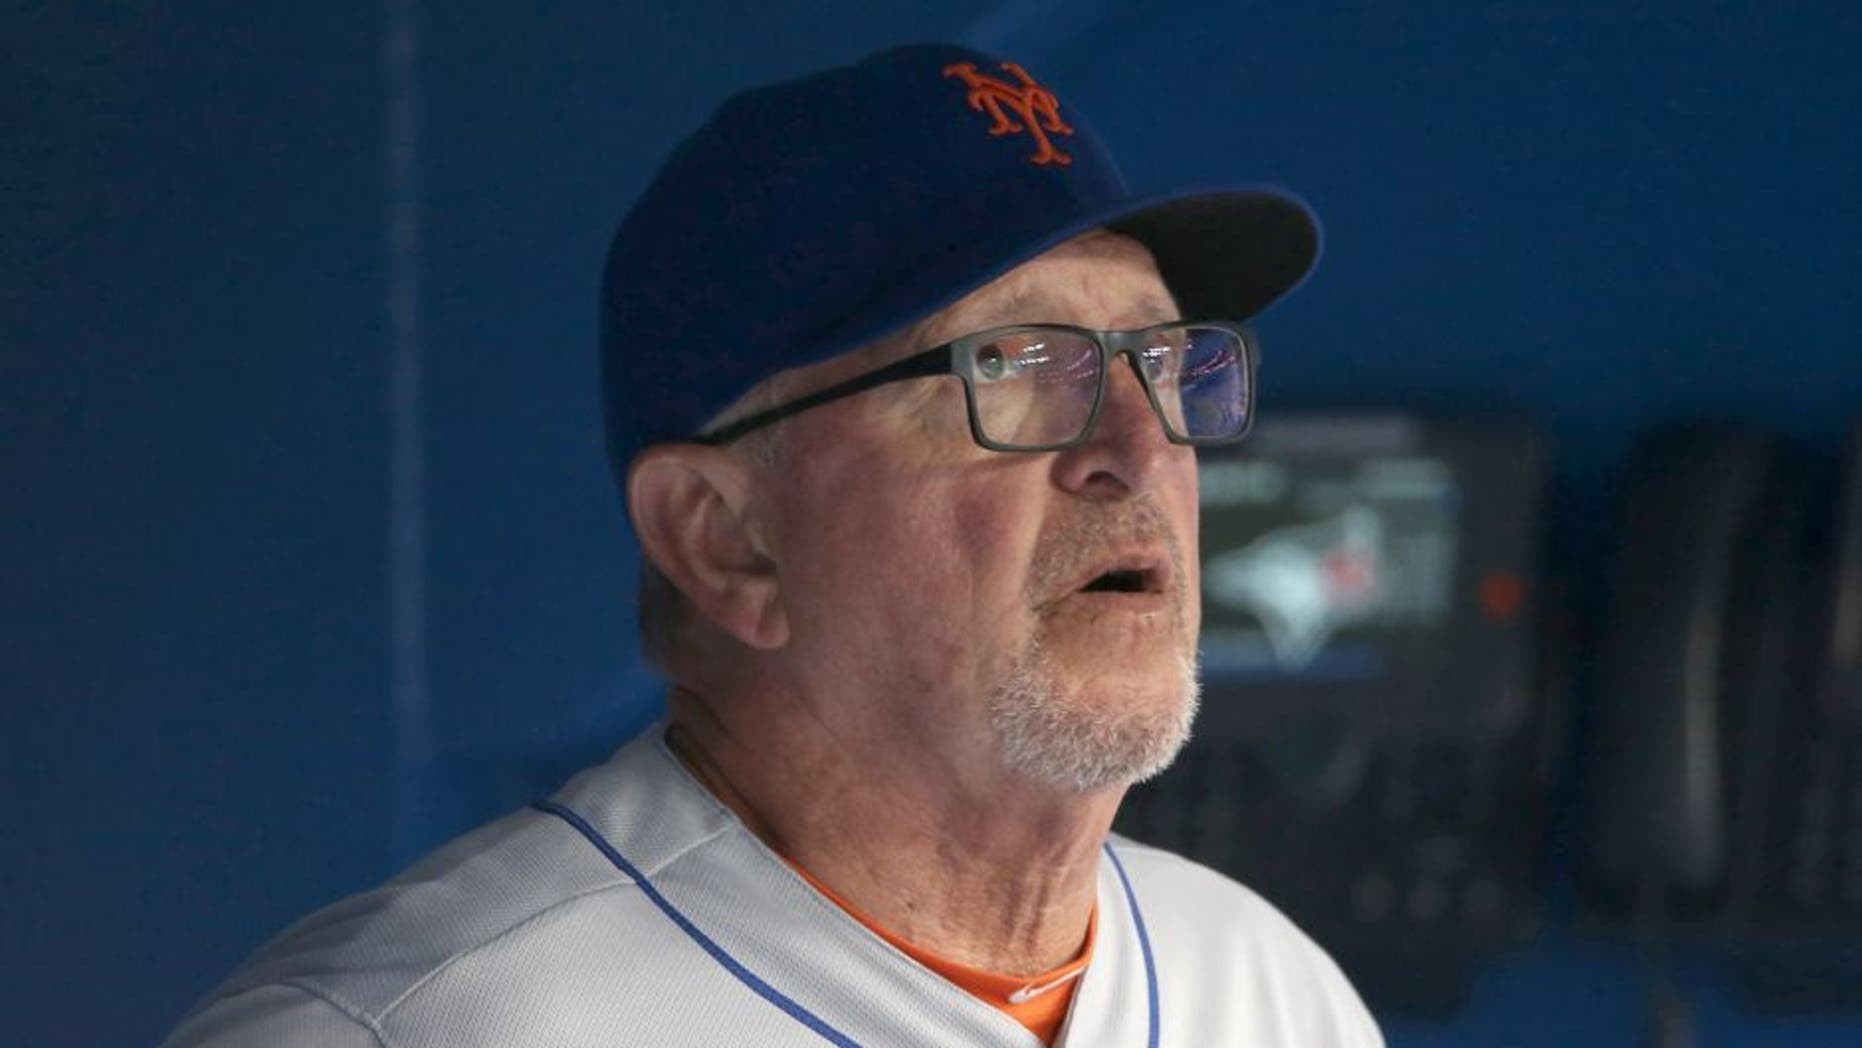 TORONTO, CANADA - JUNE 17: Pitching coach Dan Warthen #59 of the New York Mets looks on from the dugout during an MLB game against the Toronto Blue Jays on June 17, 2015 at Rogers Centre in Toronto, Ontario, Canada. (Photo by Tom Szczerbowski/Getty Images)